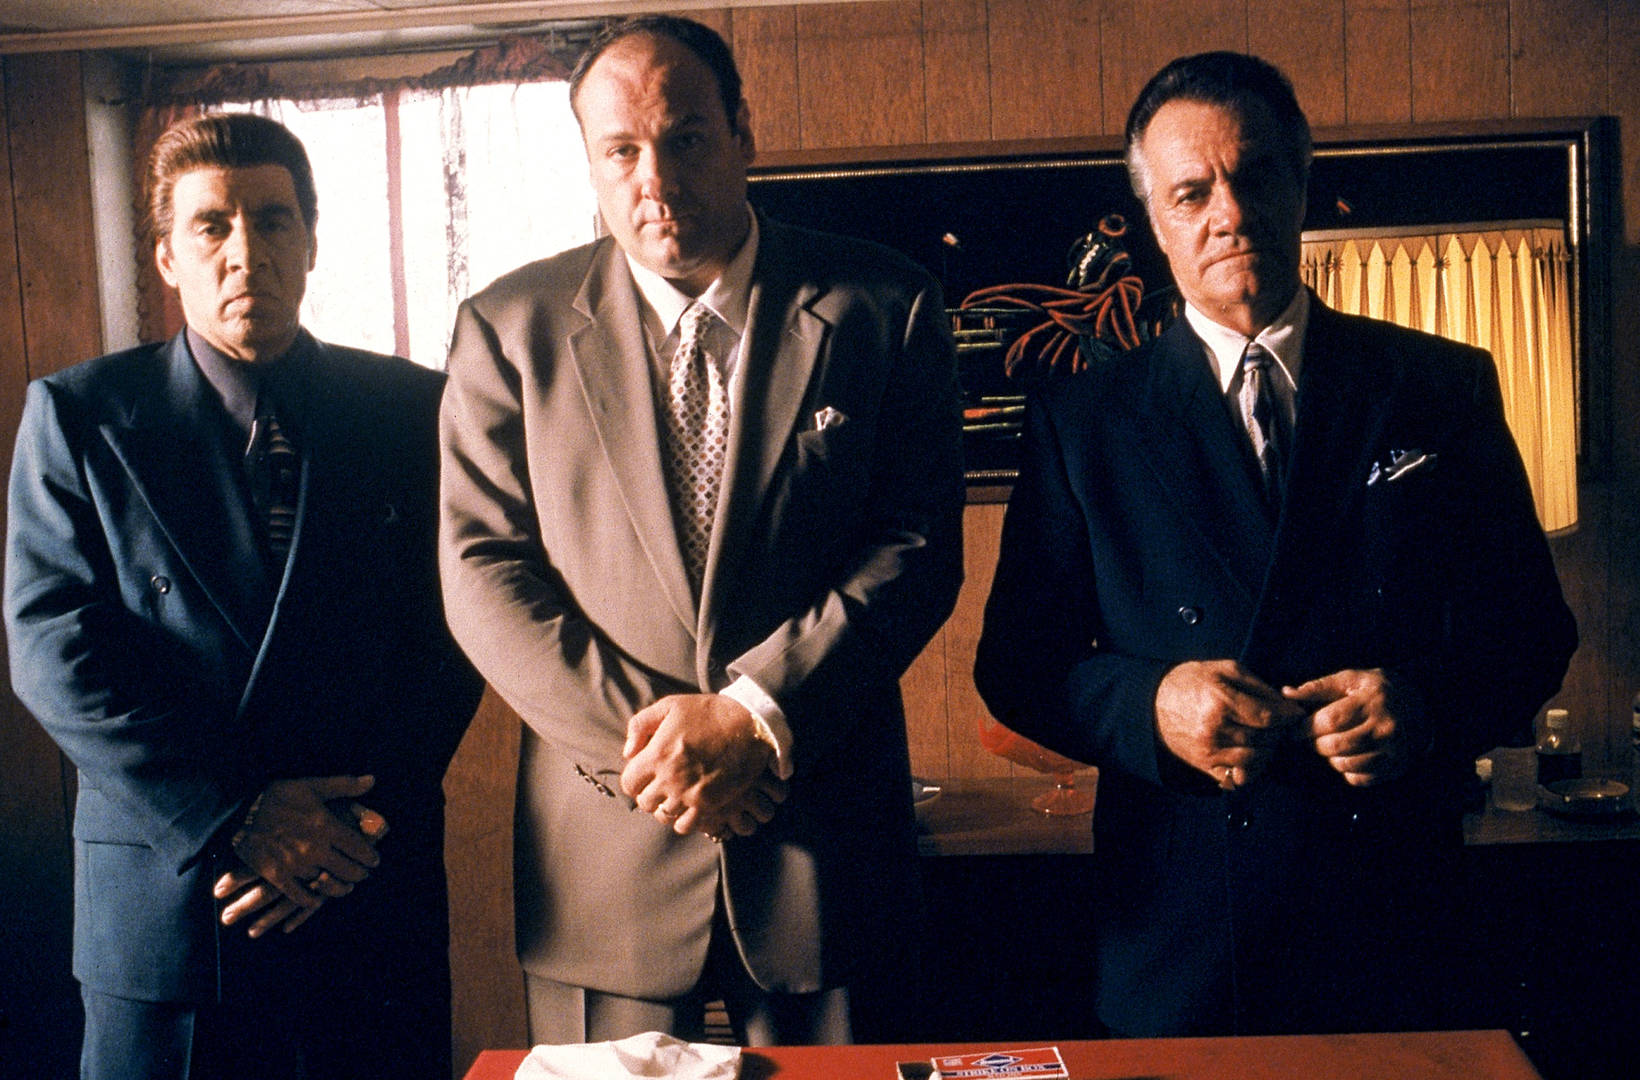 'Sopranos' Prequel Movie Will Feature a Young Tony Soprano